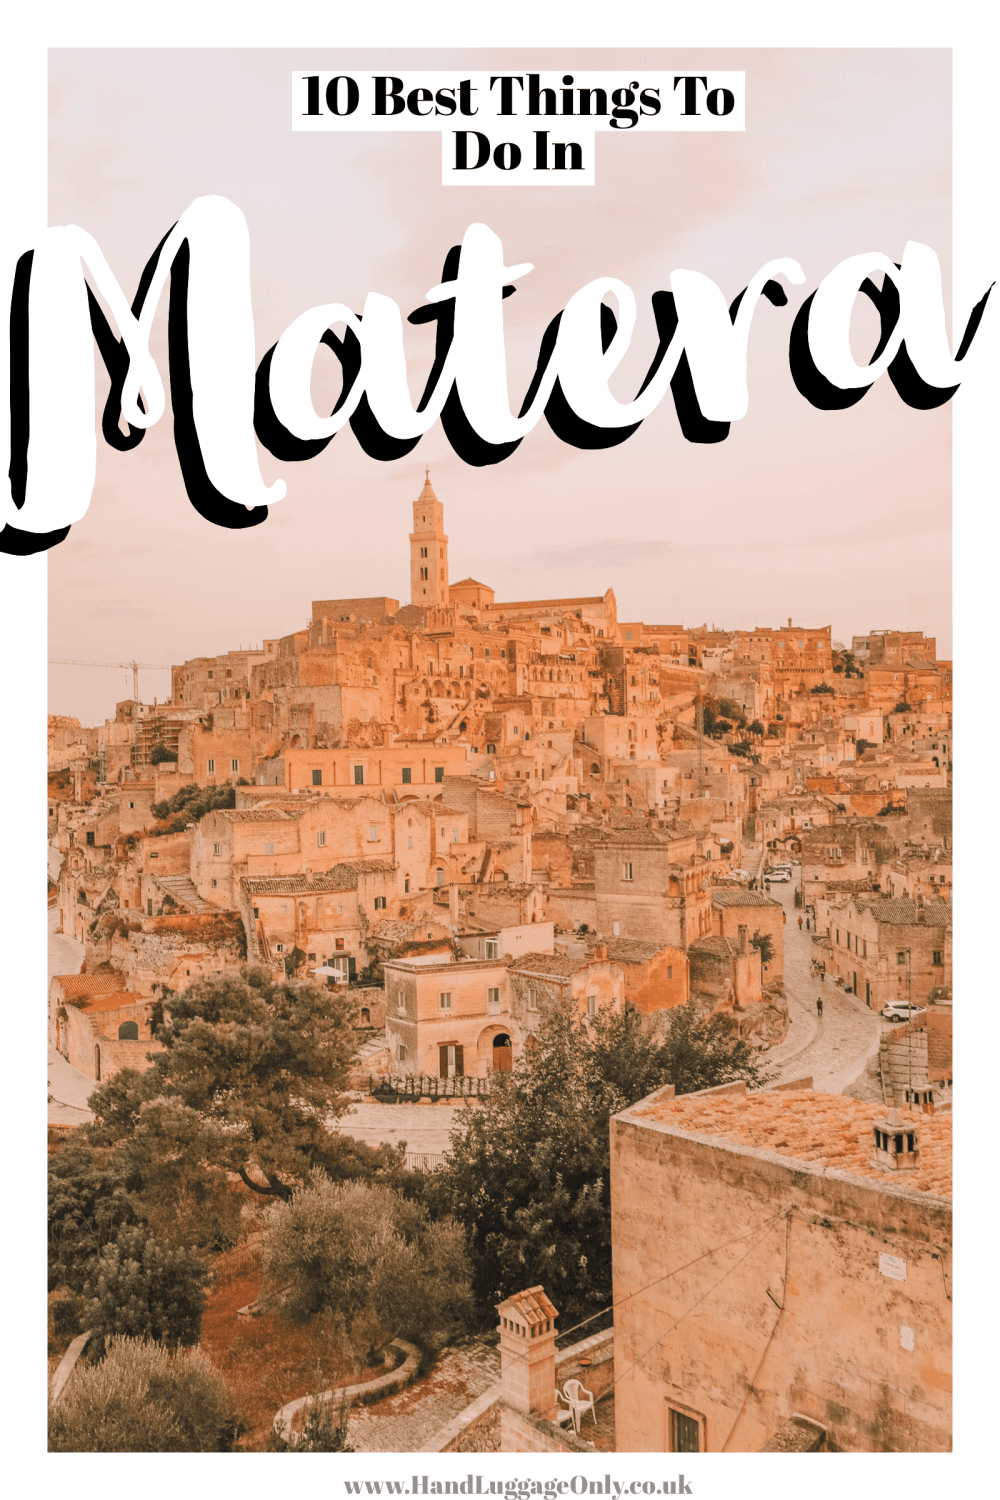 Best Things To Do In Matera, Italy (2)